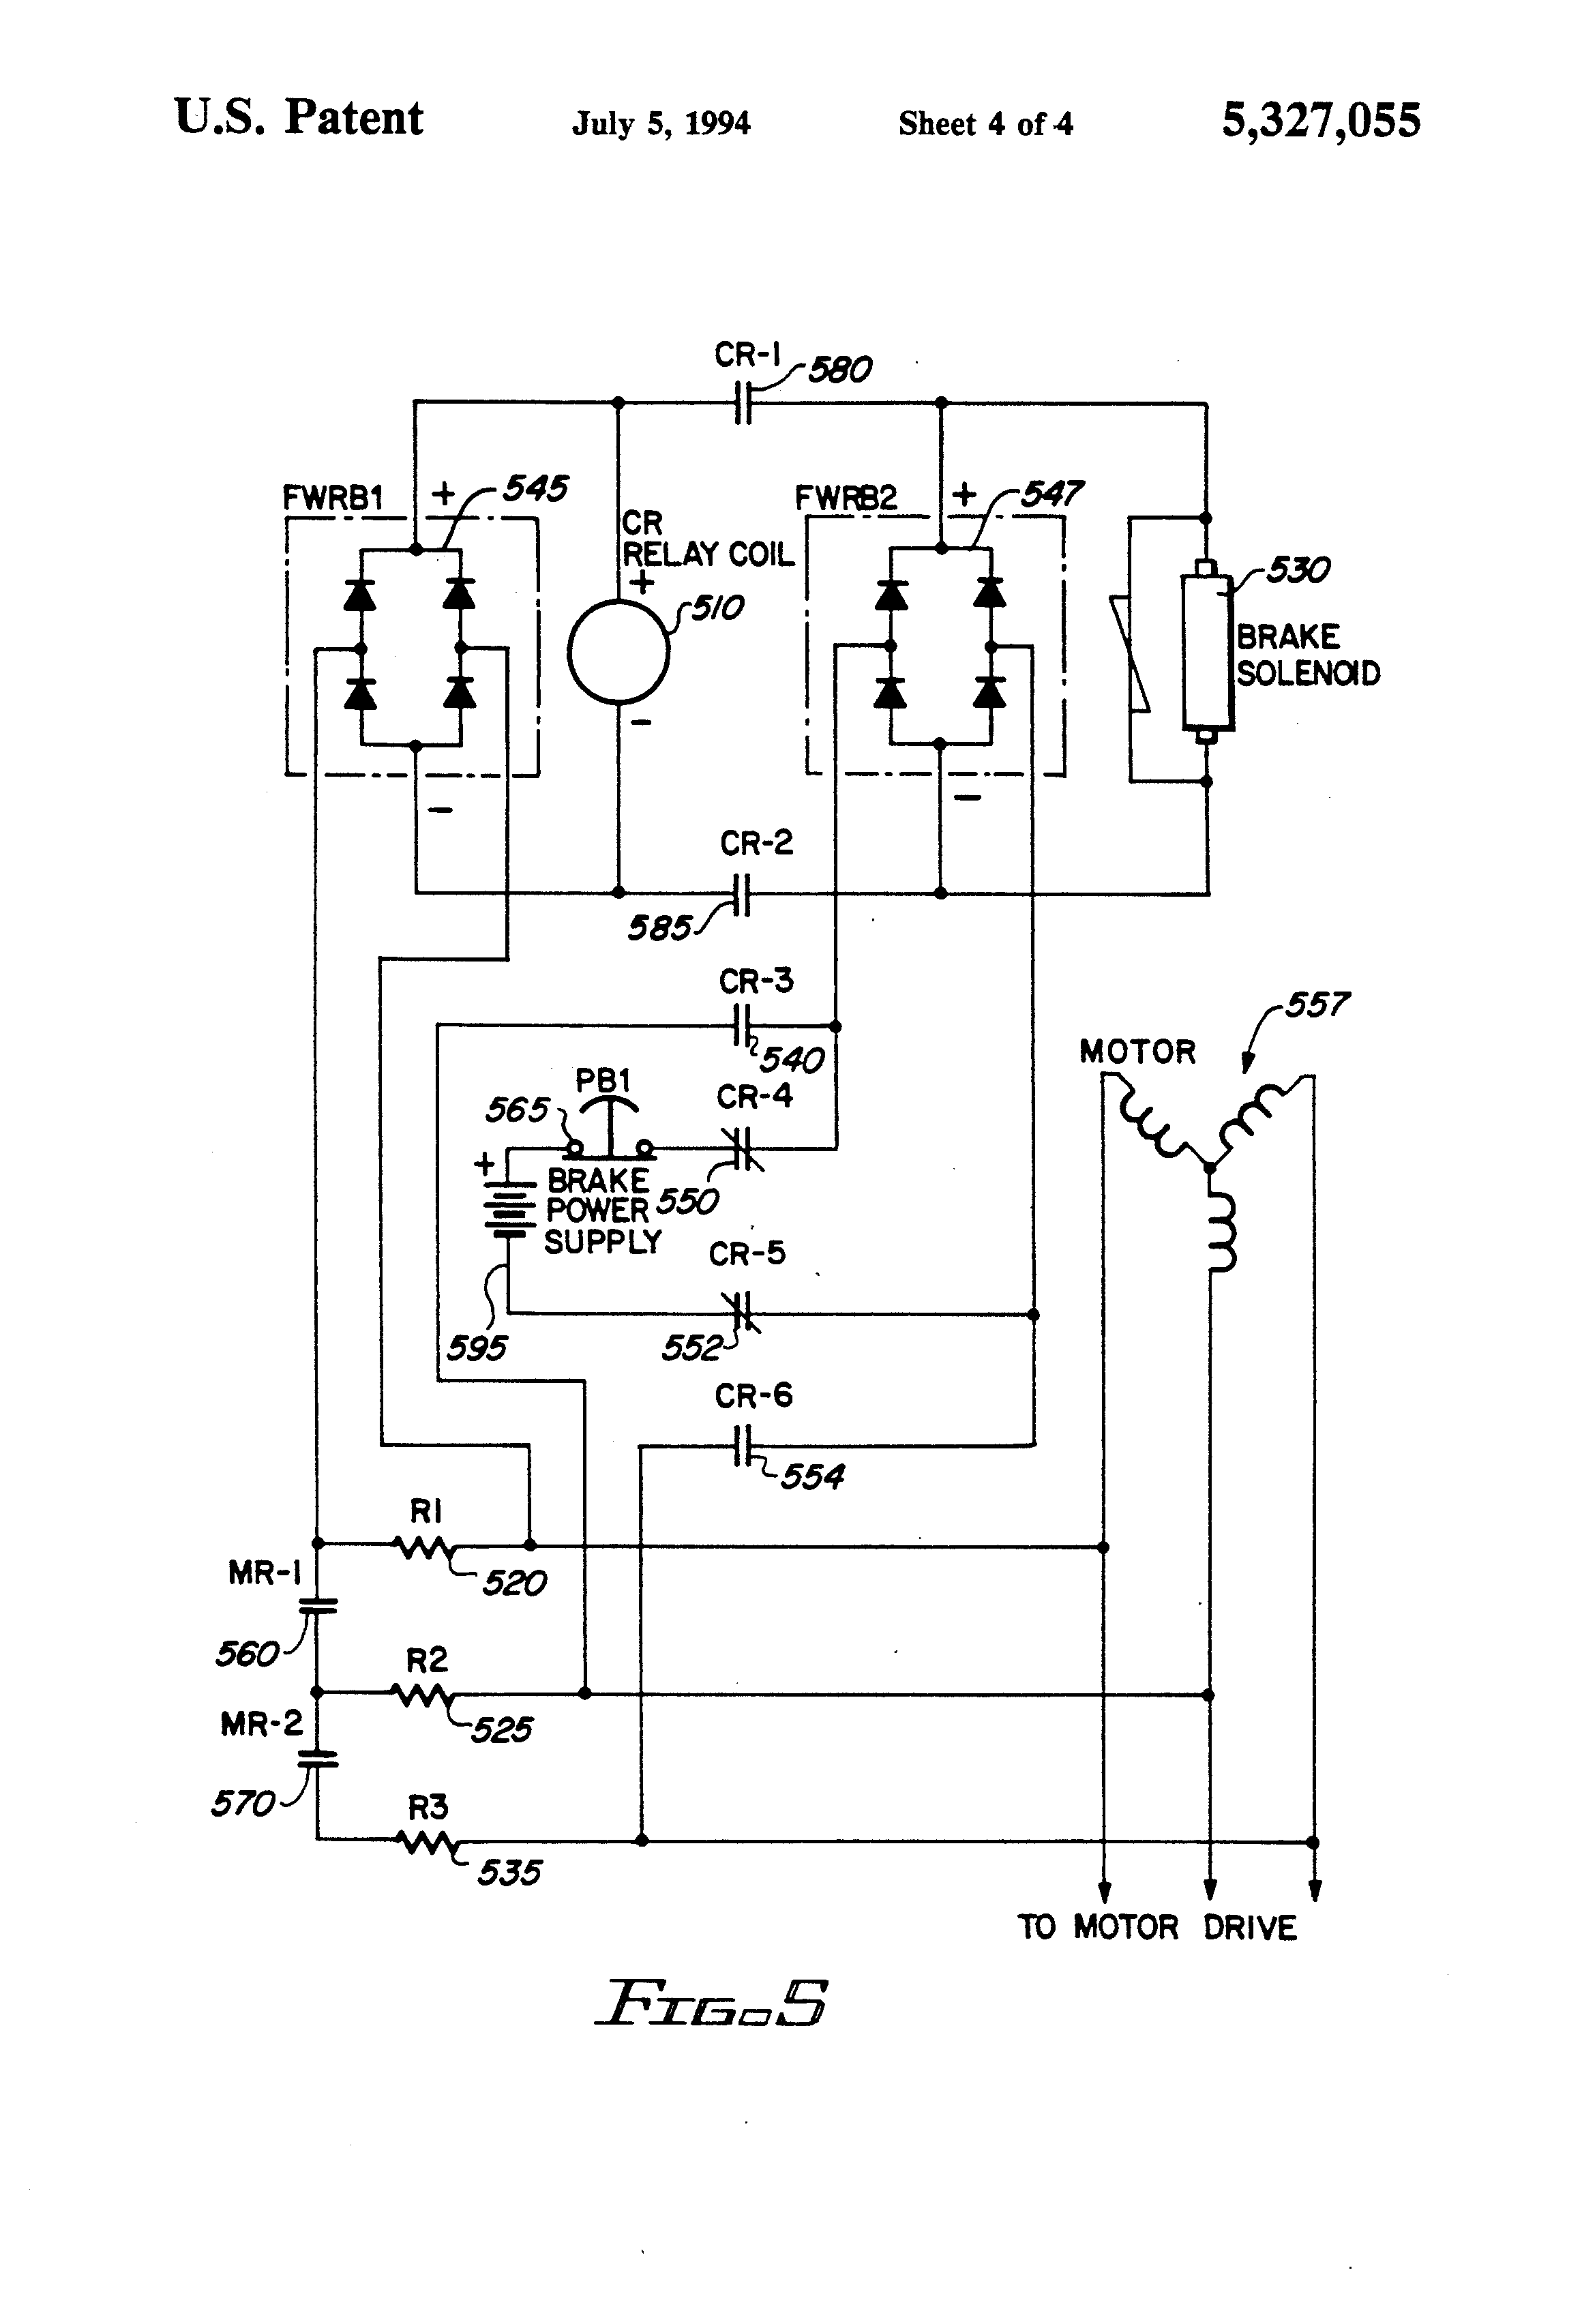 US5327055 4 patent us5327055 mechanical brake hold circuit for an electric gmf electric motor wiring diagram at reclaimingppi.co